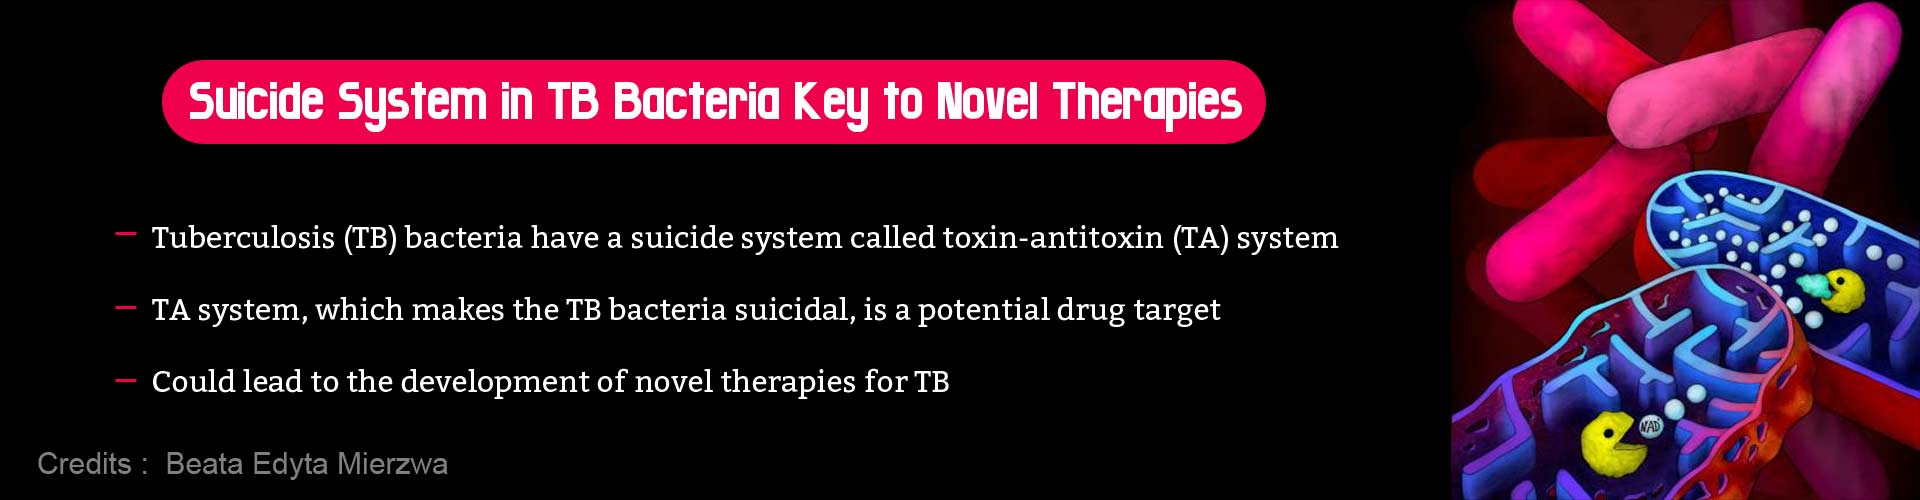 Suicide System of Tuberculosis Bacteria Can Lead to New Therapies